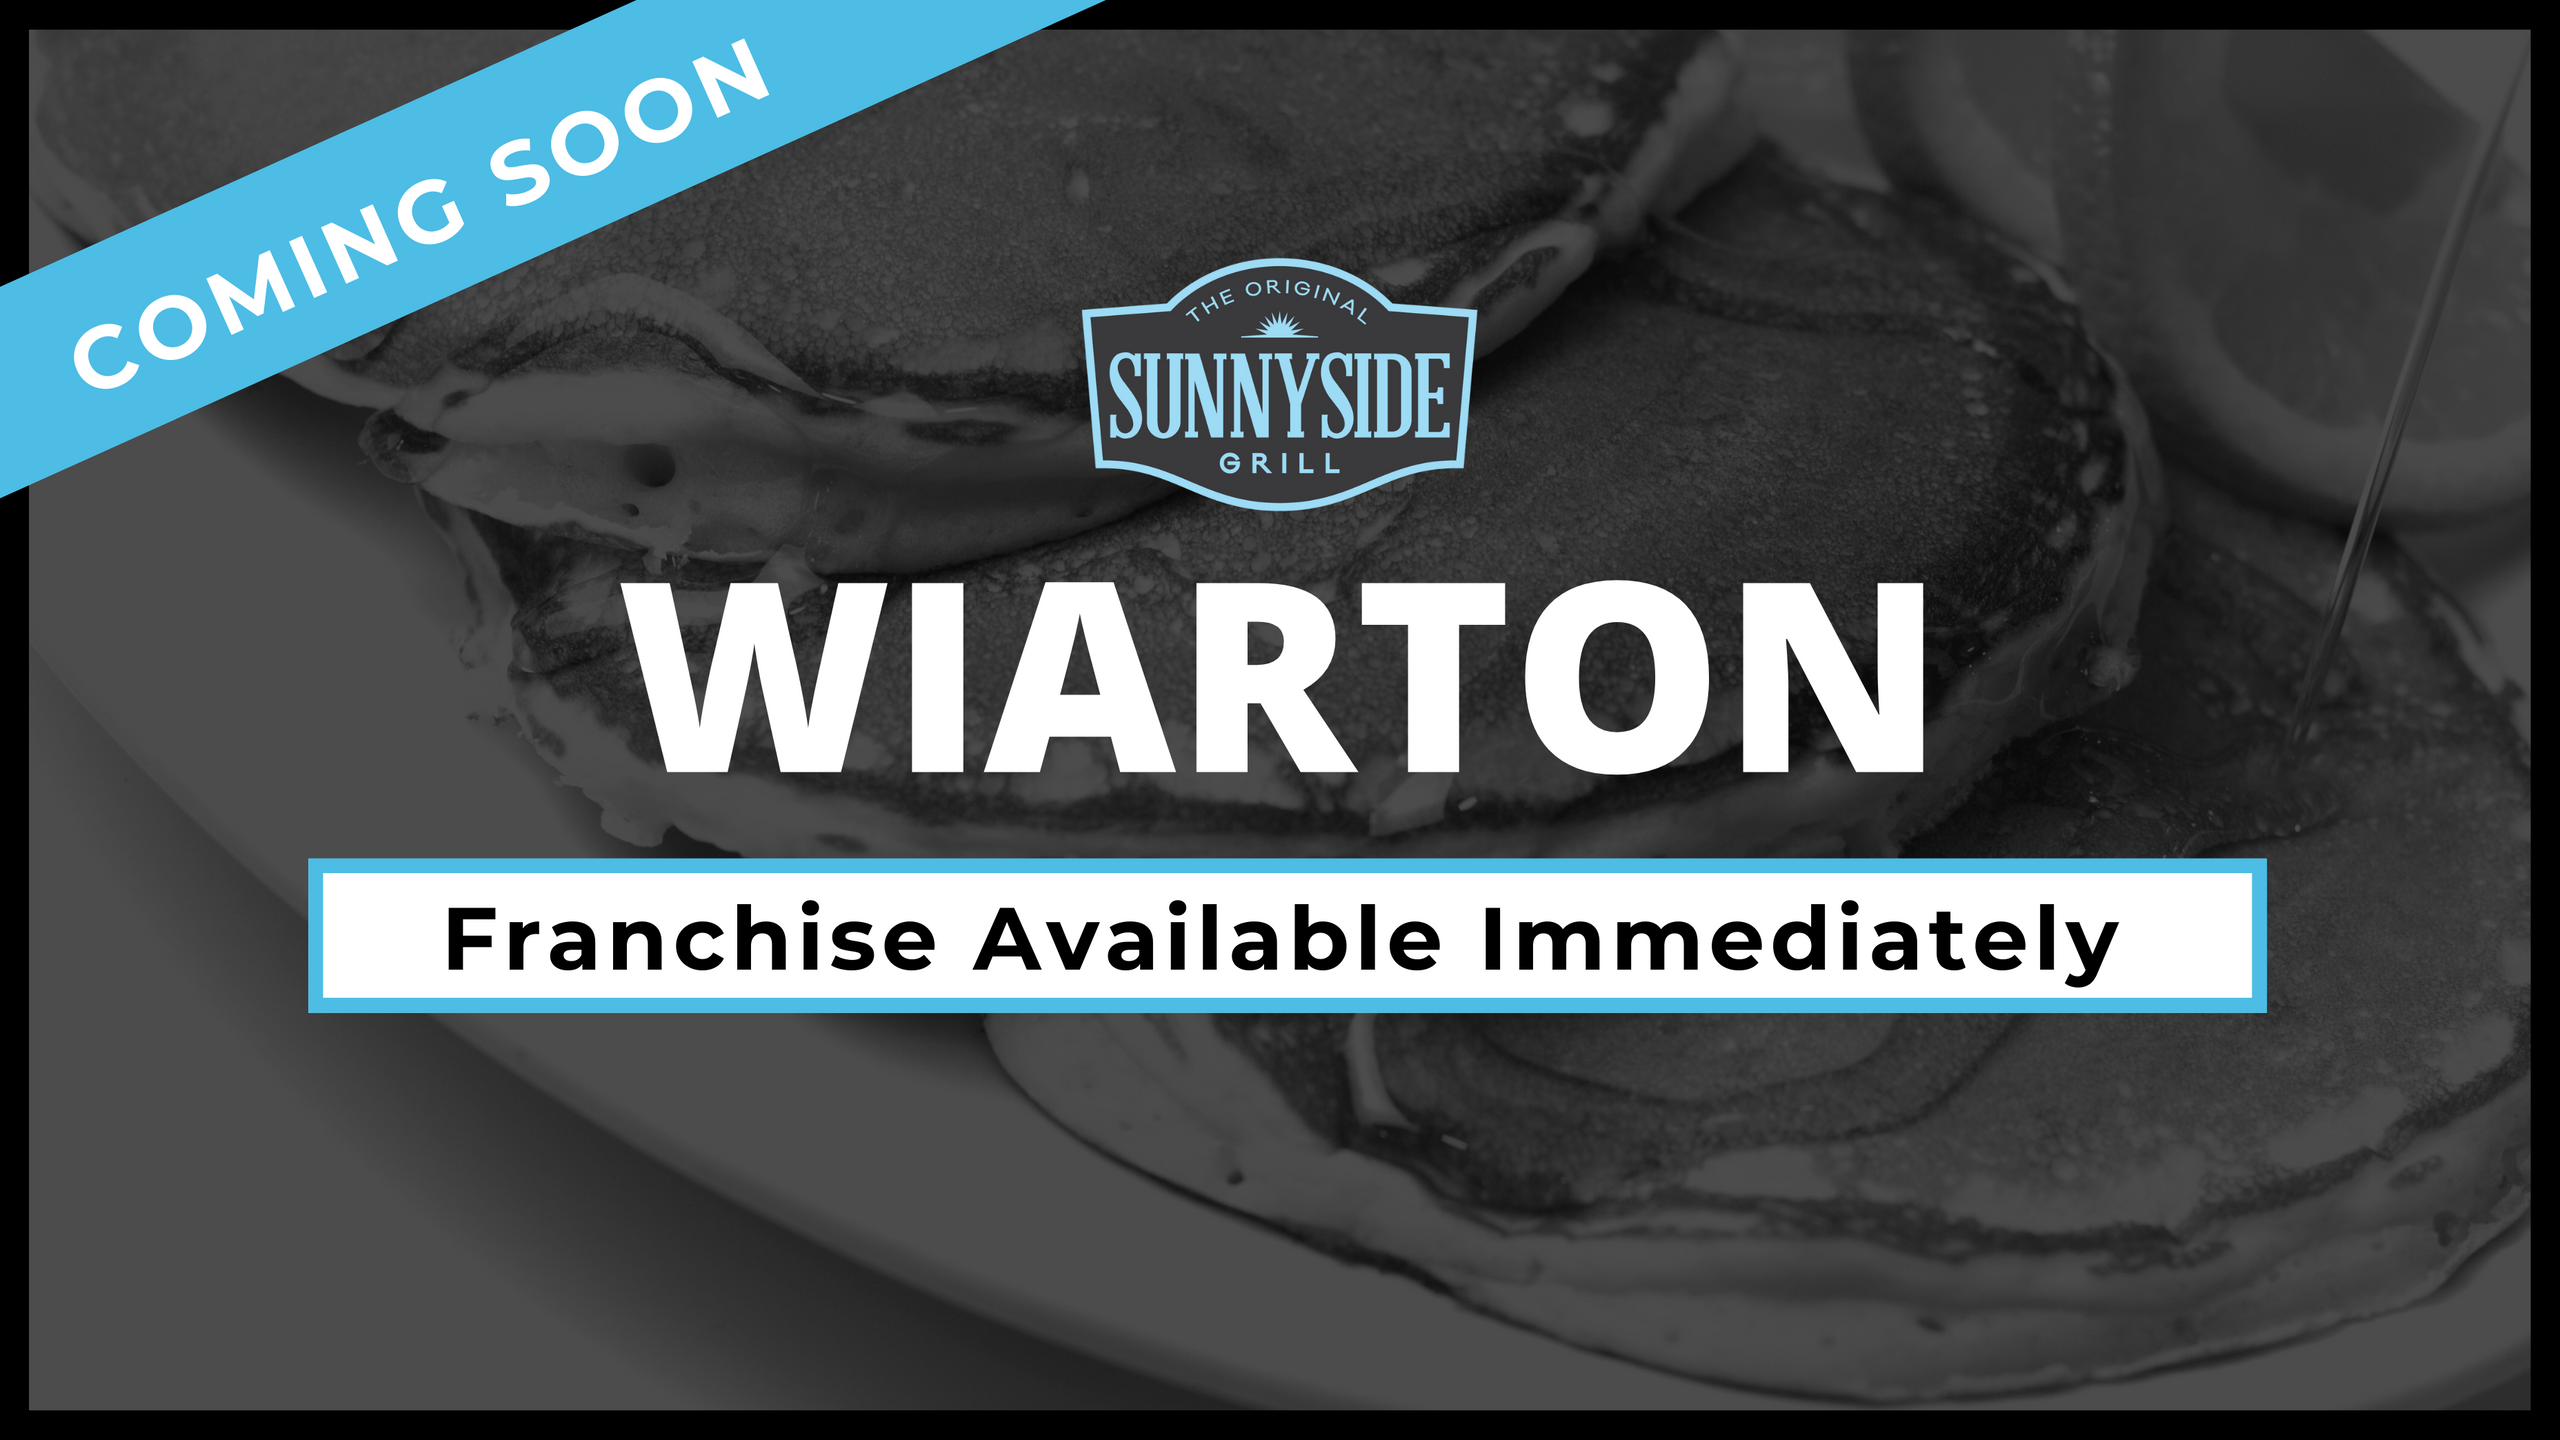 Wiarton Franchise Available